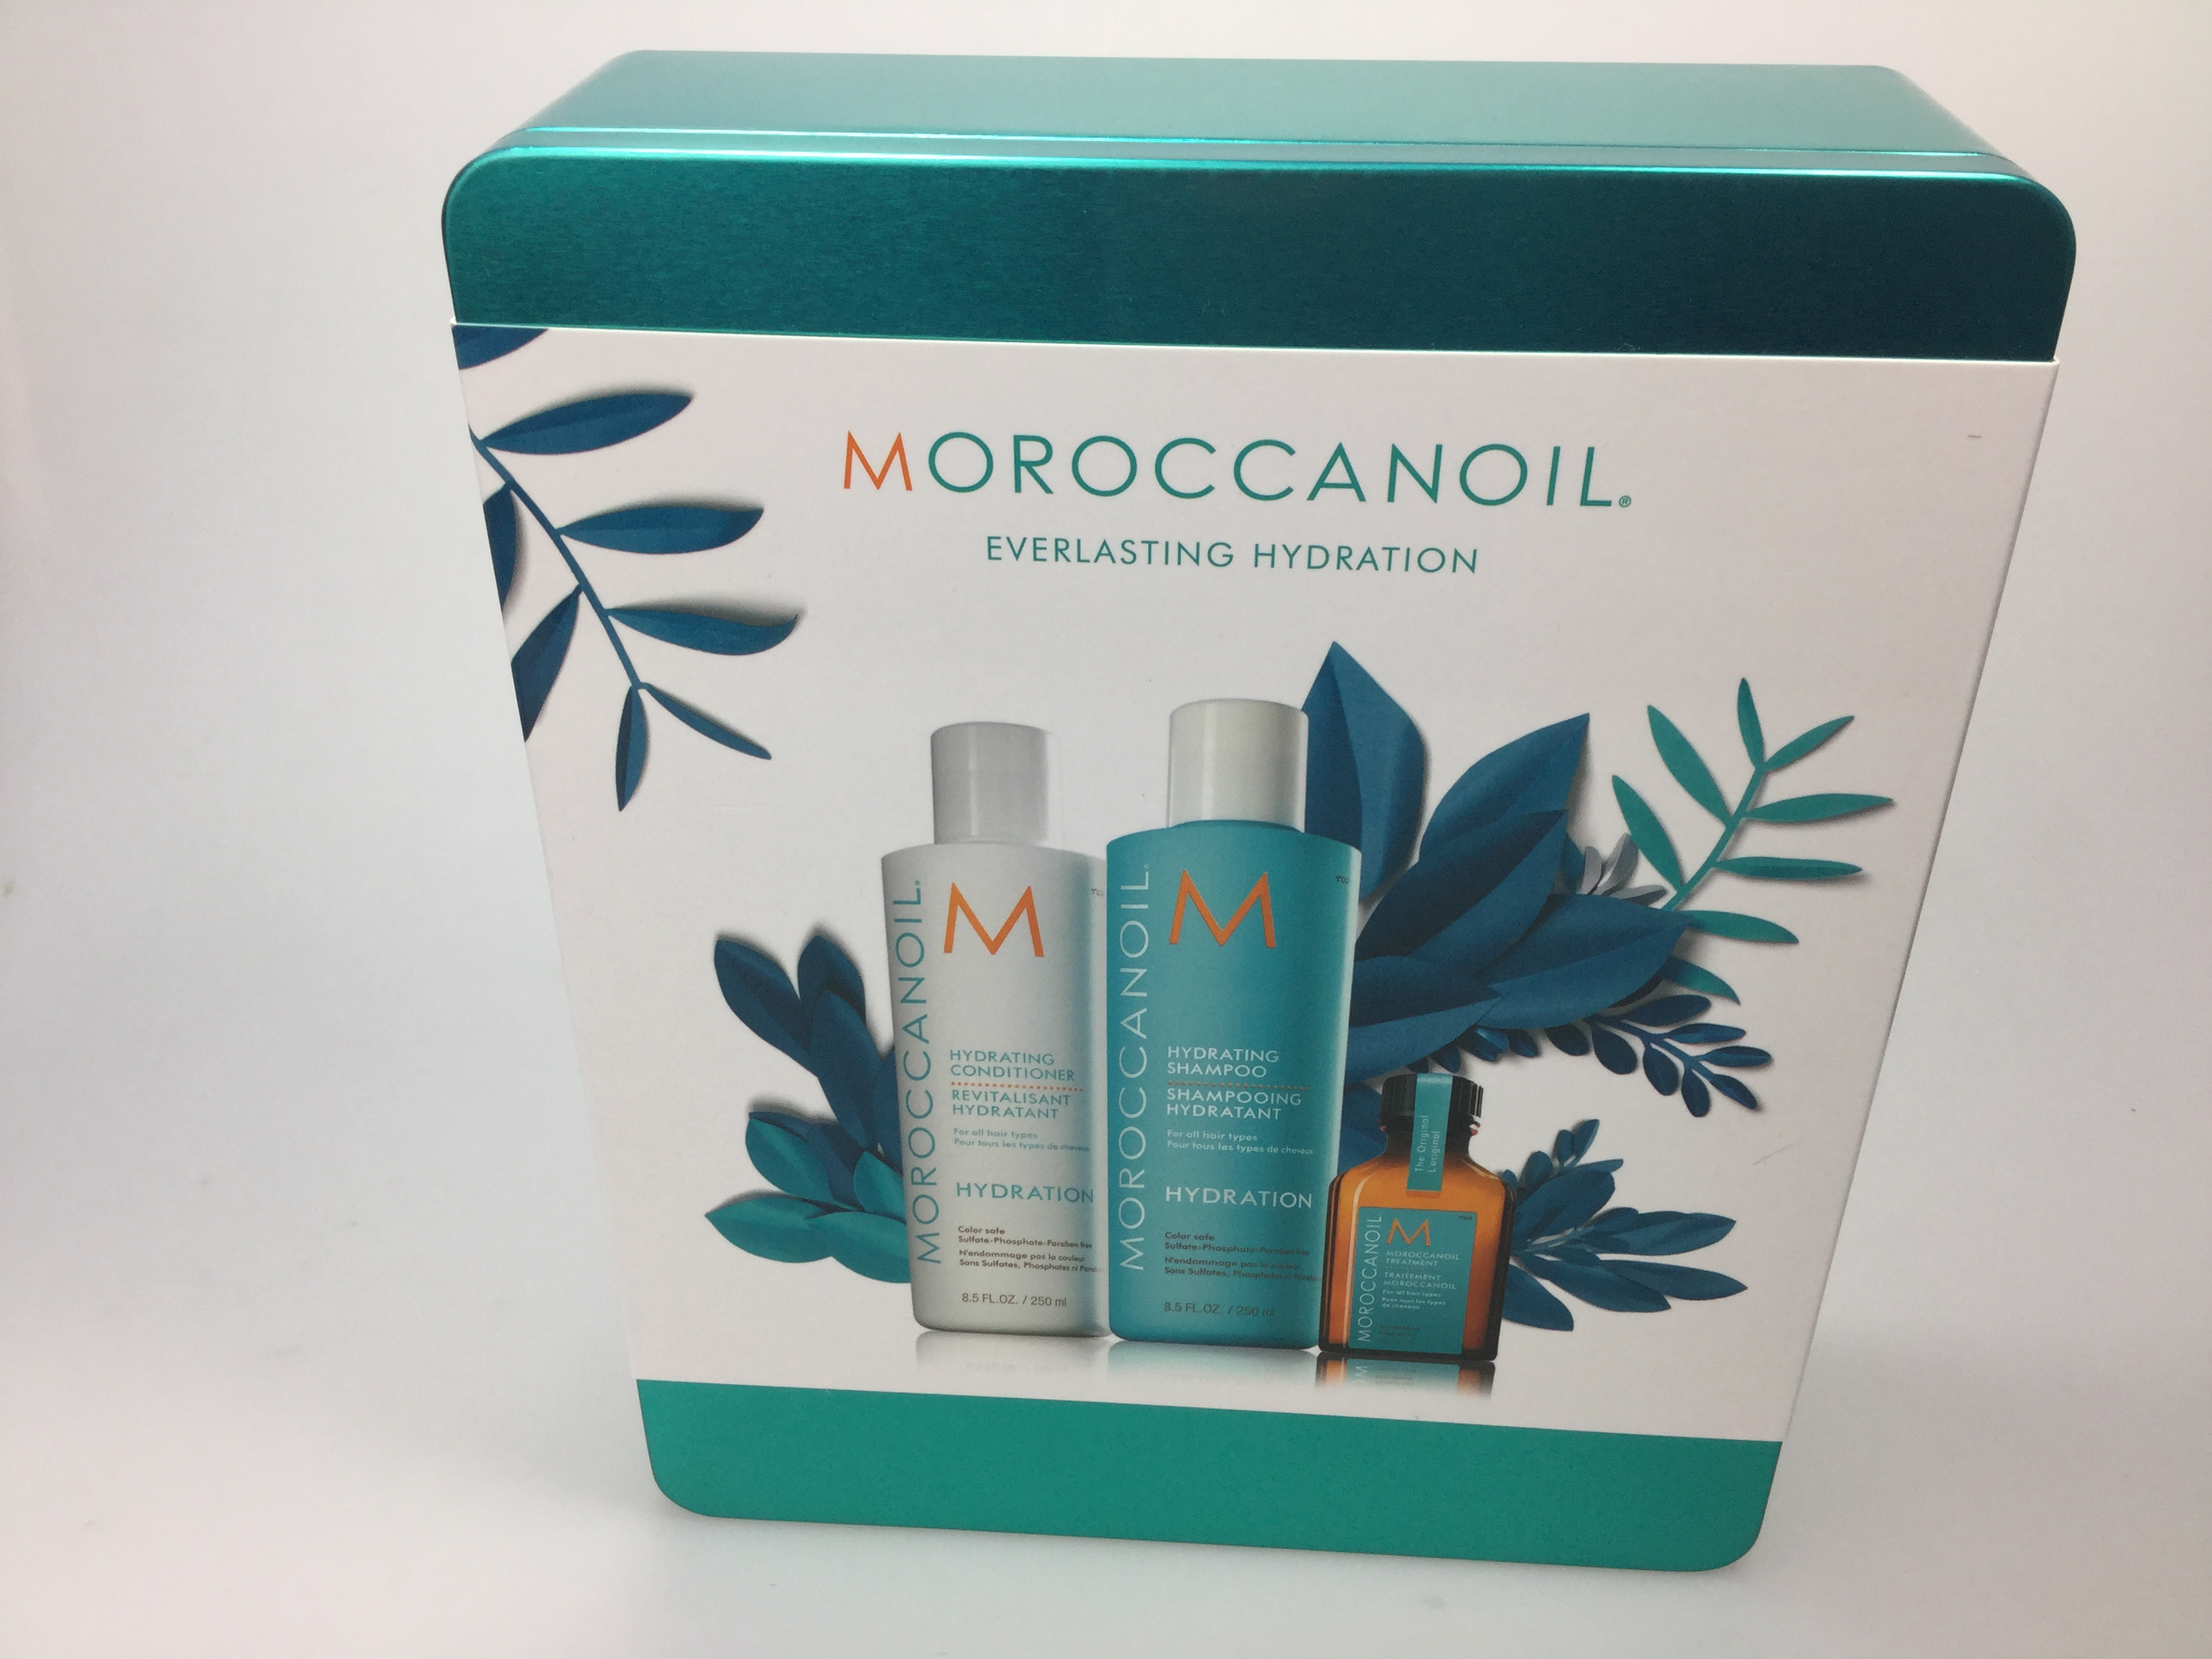 moroccanoil everlasting hydration set